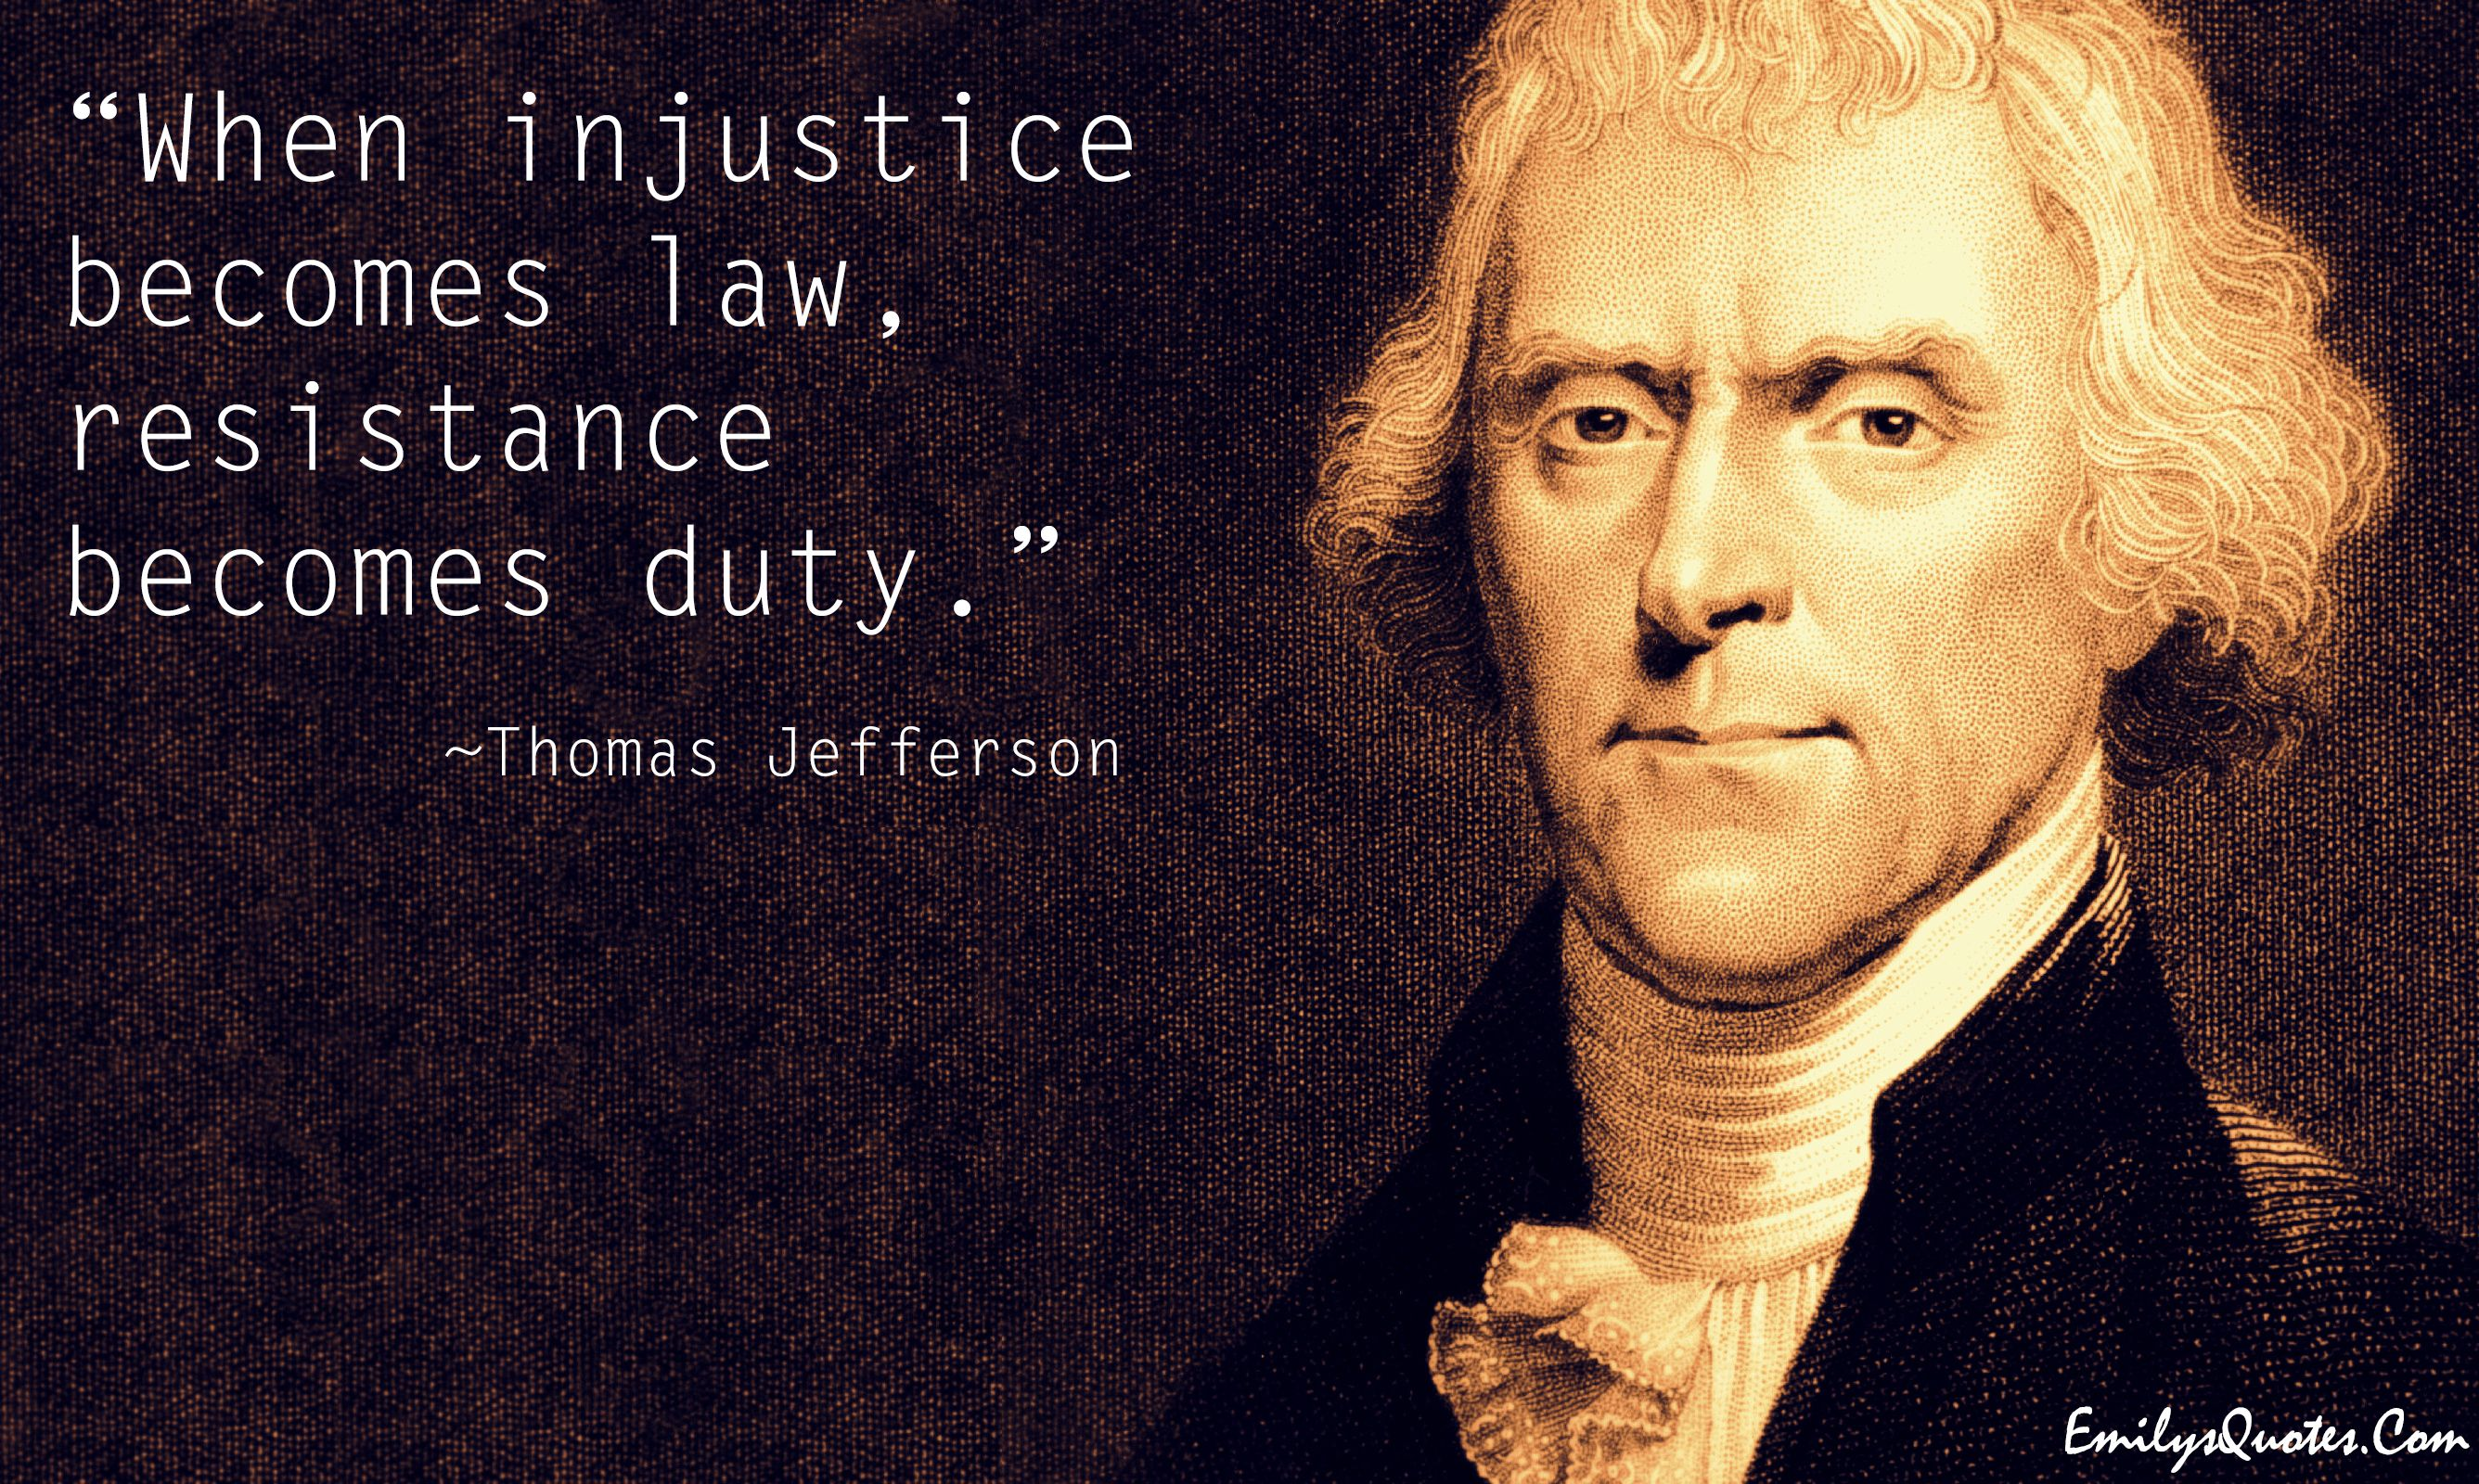 Pin By Shaheen Aladin On Great Quotes Law Quotes Thomas Jefferson Injustice Quotes